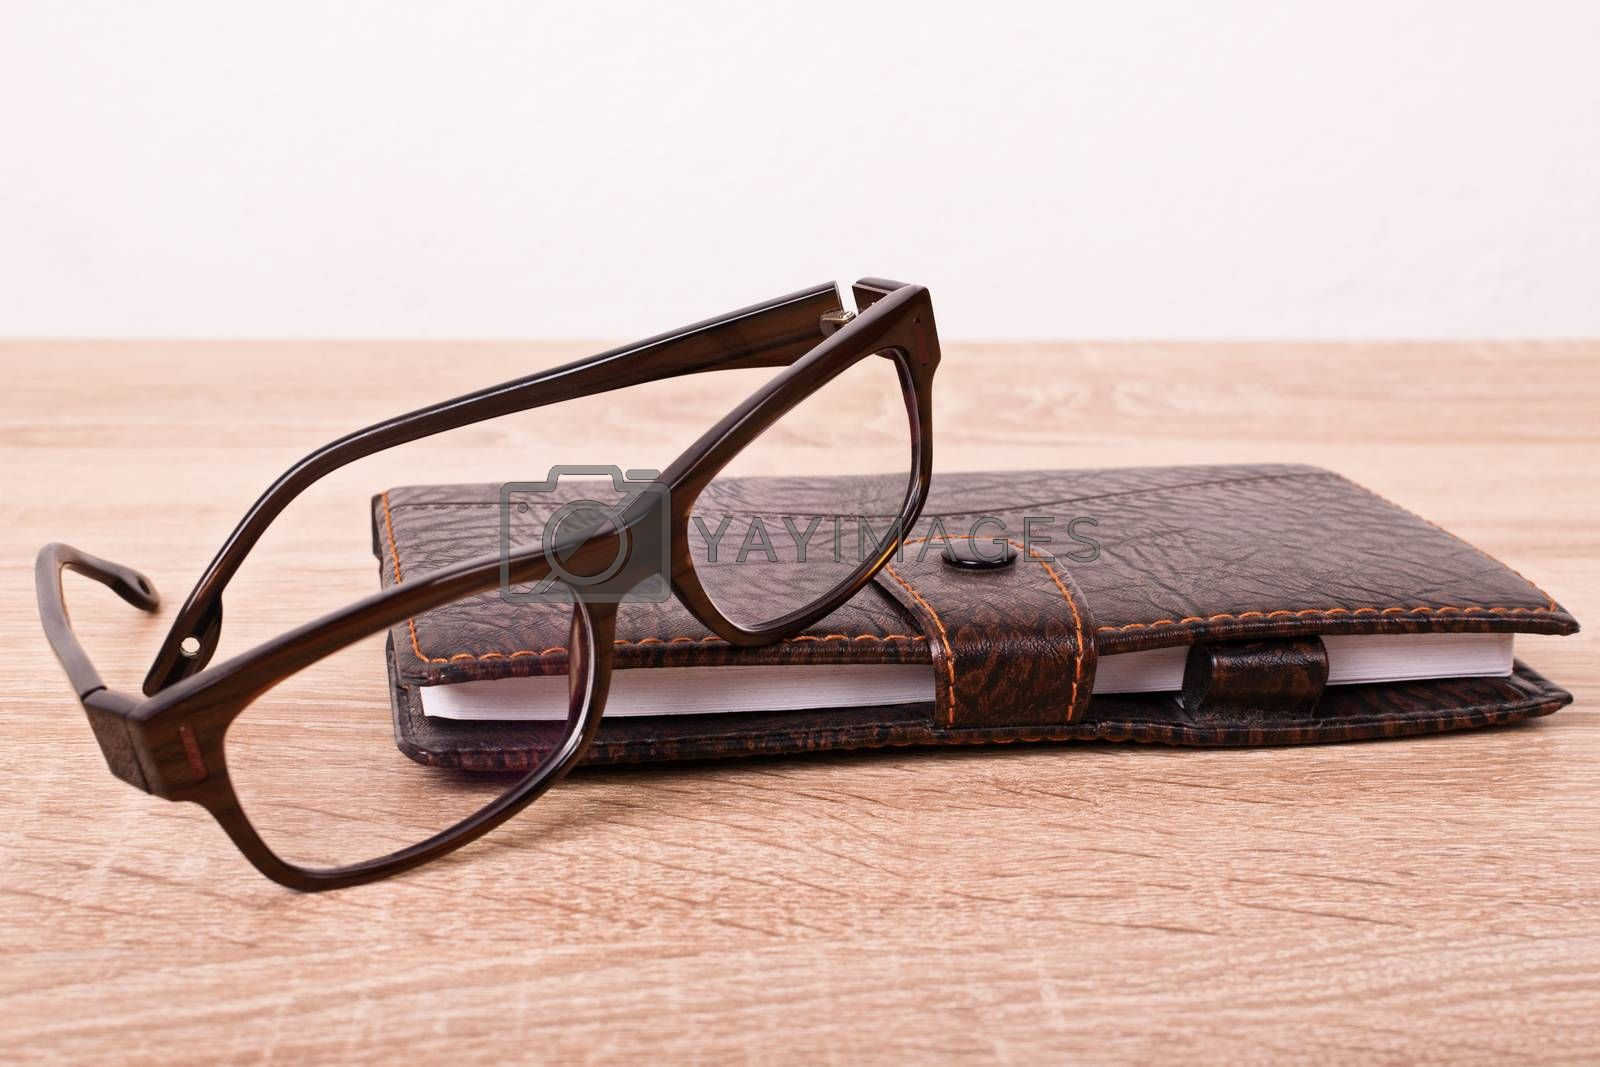 Close up of a planner notebook and glasses placed on a wooden table.